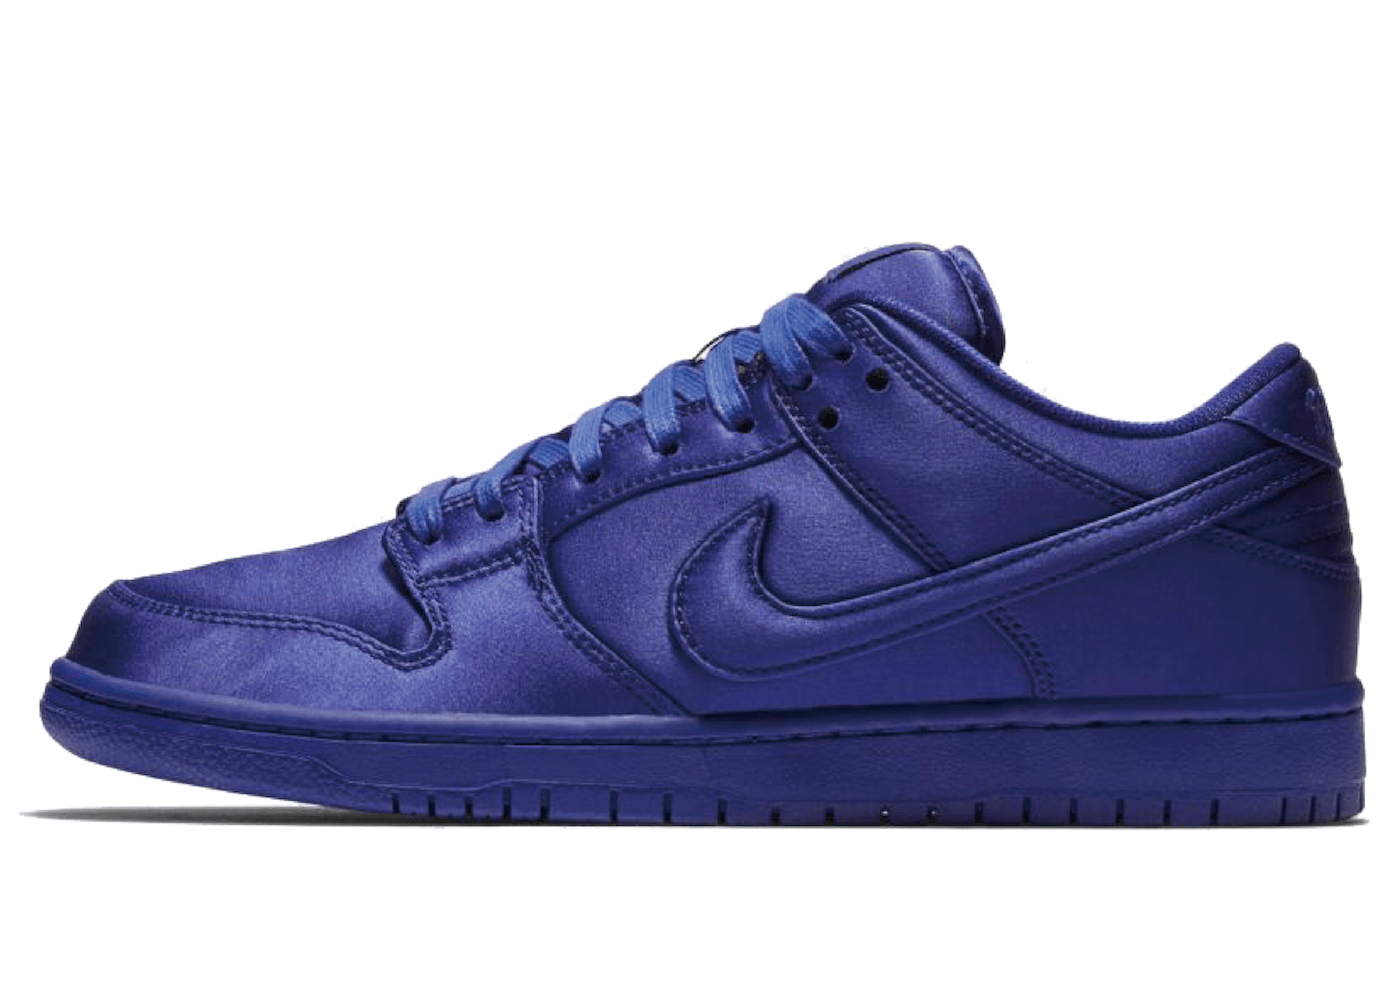 Nike SB Dunk Low NBA Deep Royal Blueの写真